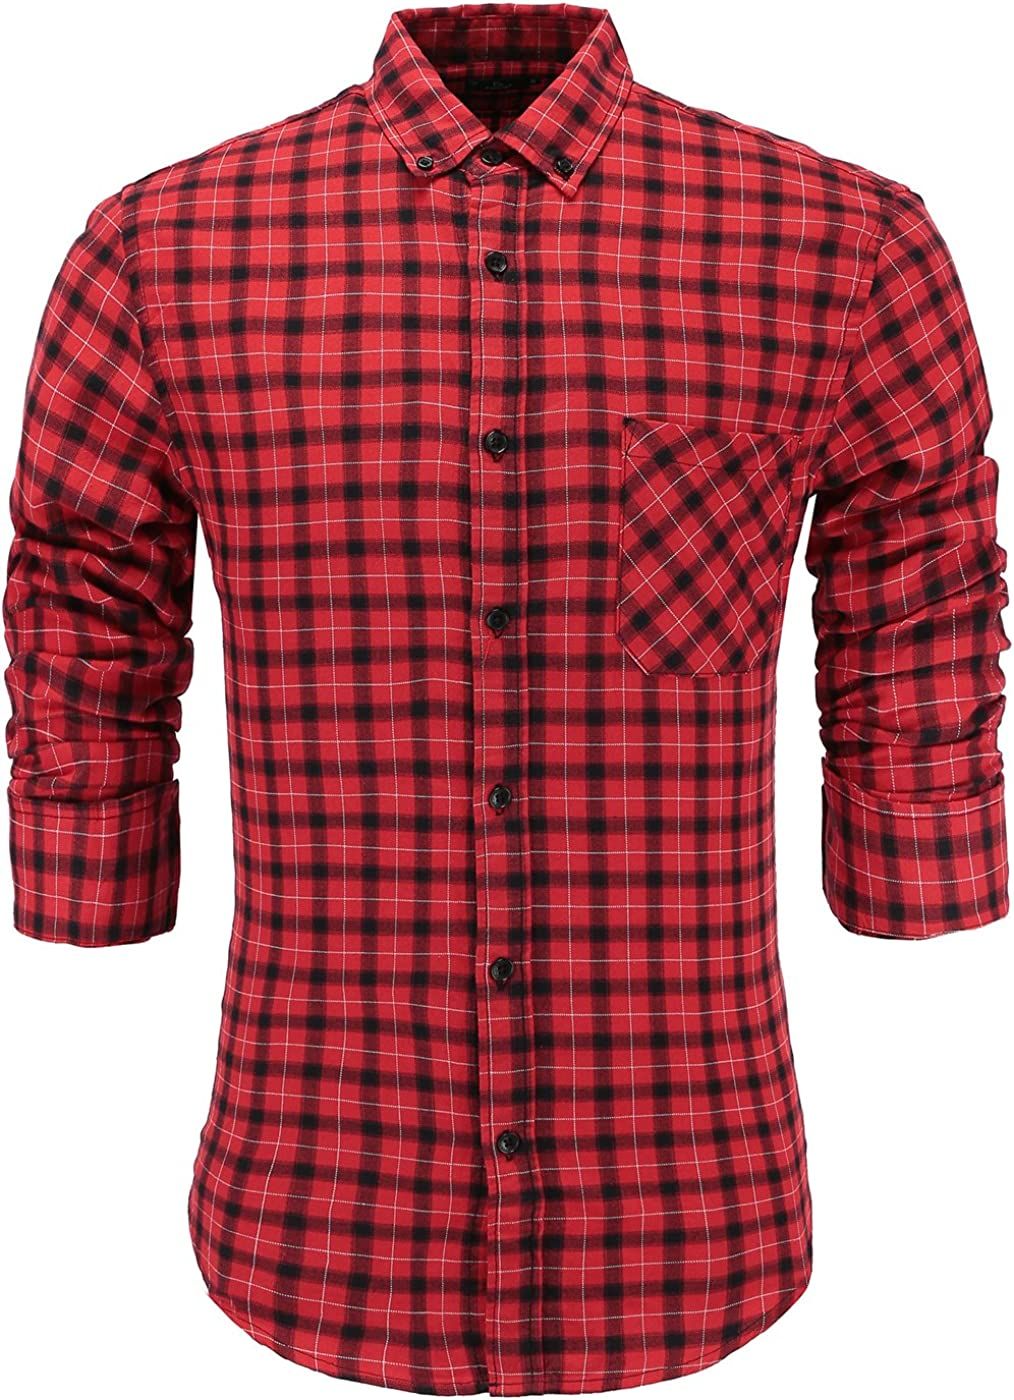 Emiqude Mens 100/% Cotton Slim Fit Long Sleeve Plaid Button-Down Checked Dress Shirt